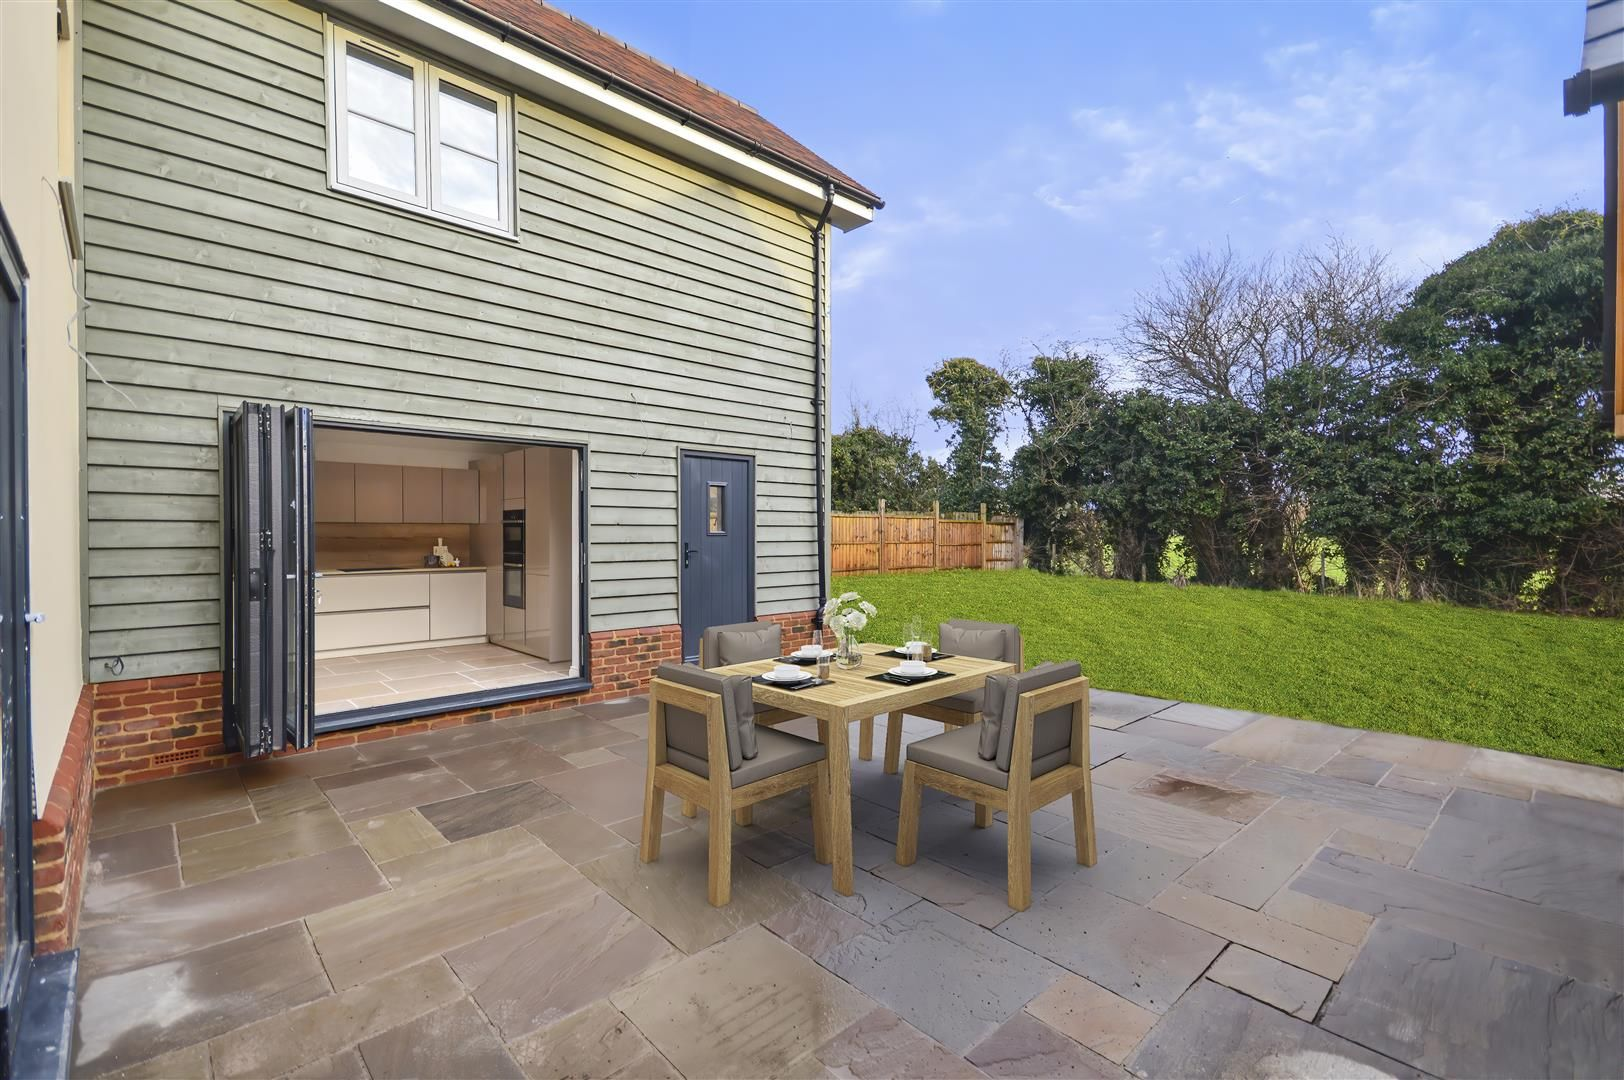 3 bed detached for sale in Marden  - Property Image 2